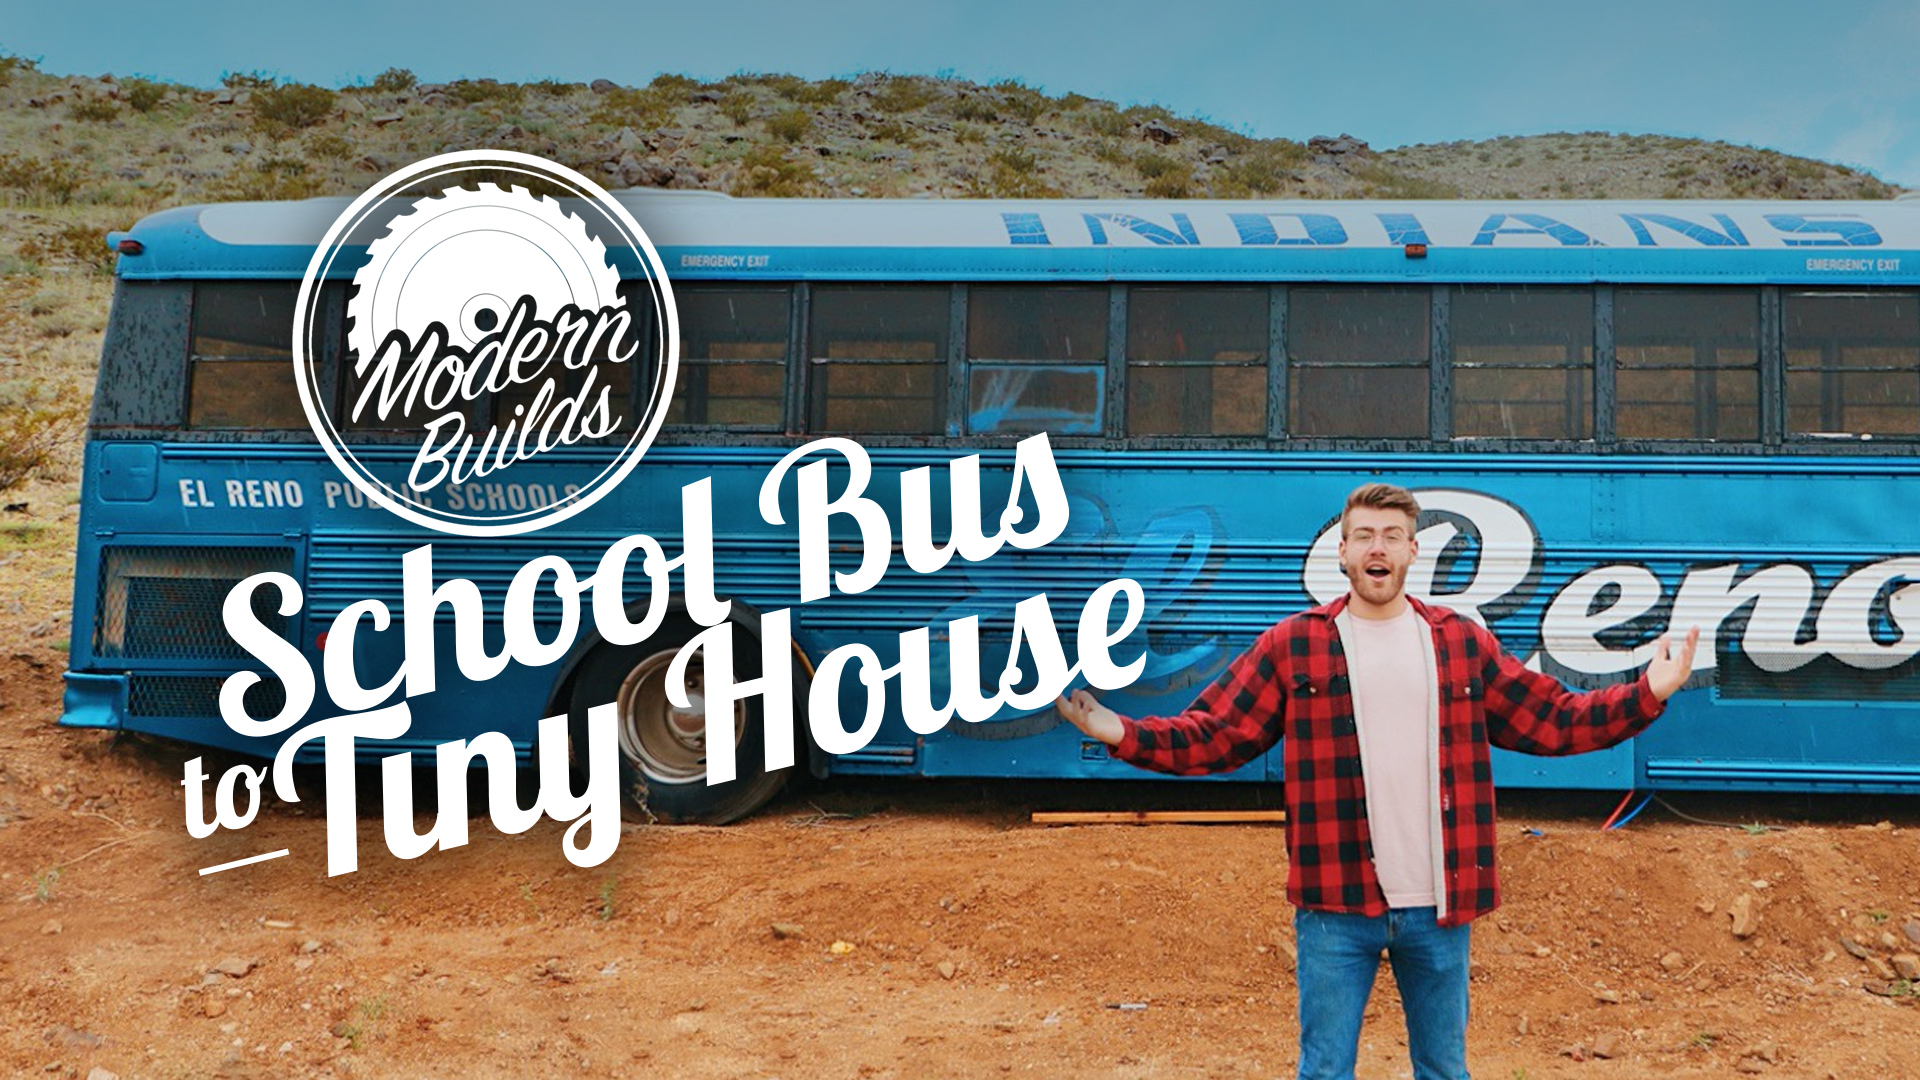 Building off the grid takes on a whole new meaning on School Bus To Tiny House